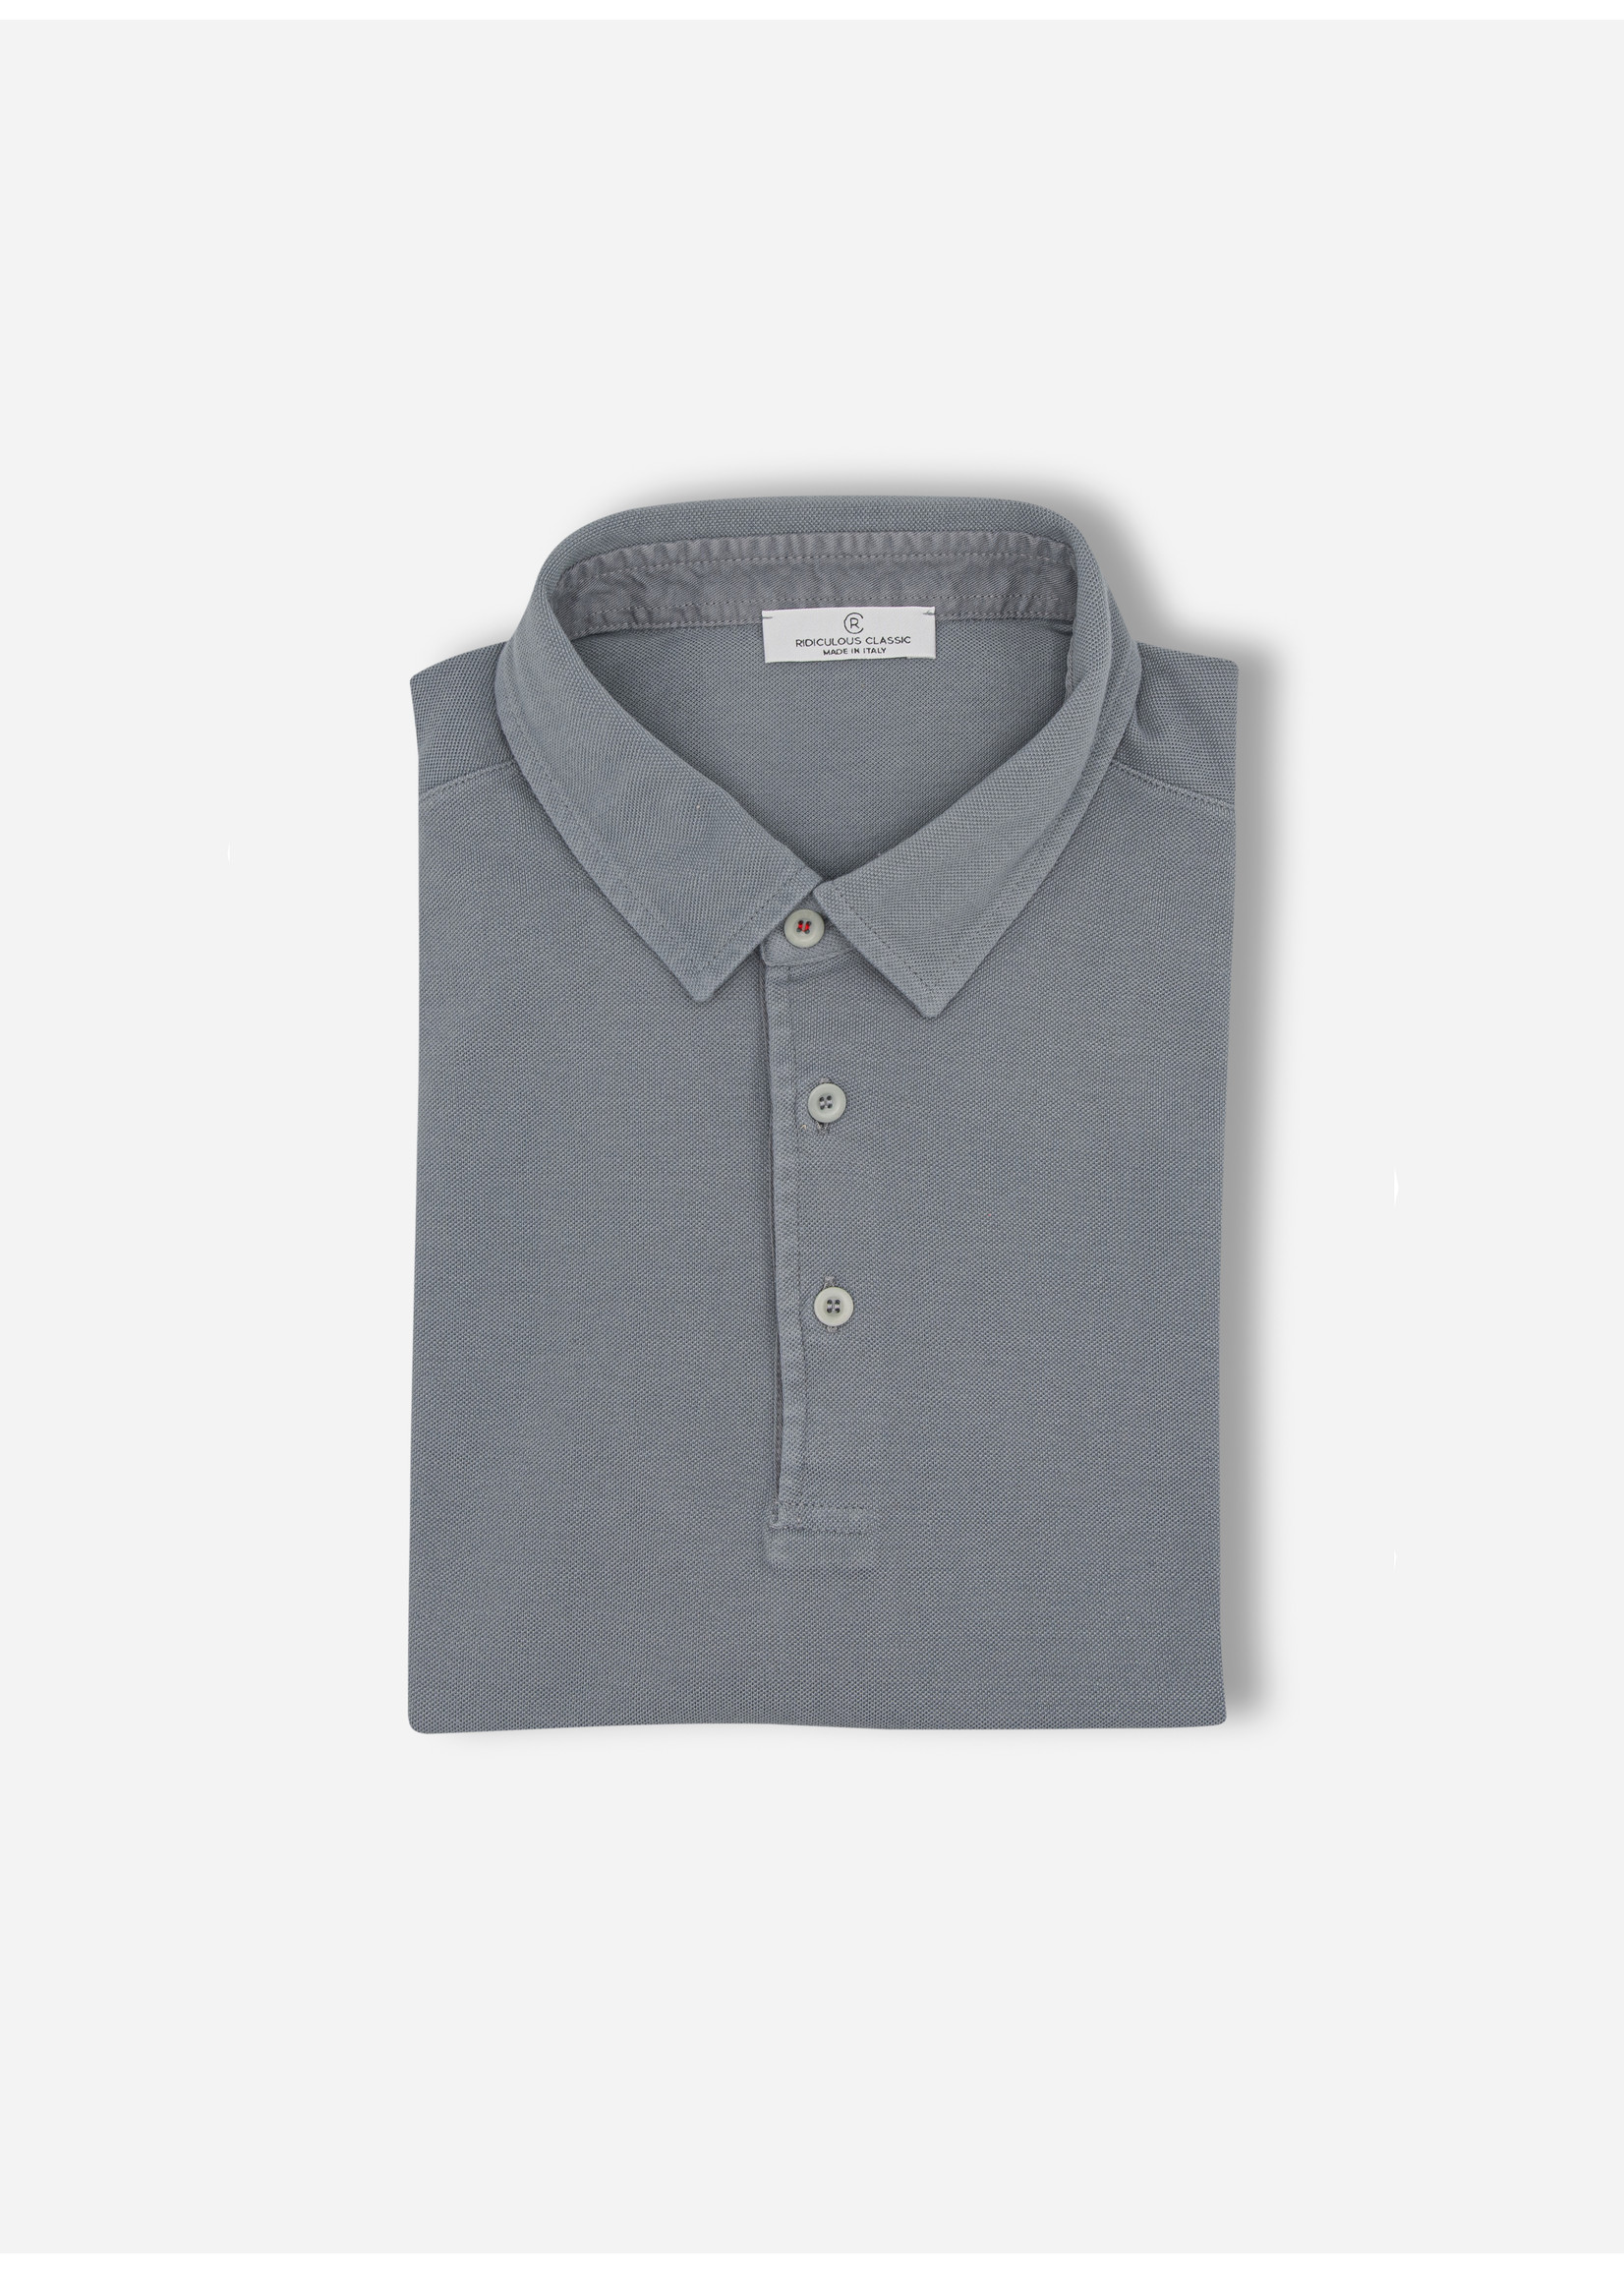 Ridiculous Classic Polo red button grey